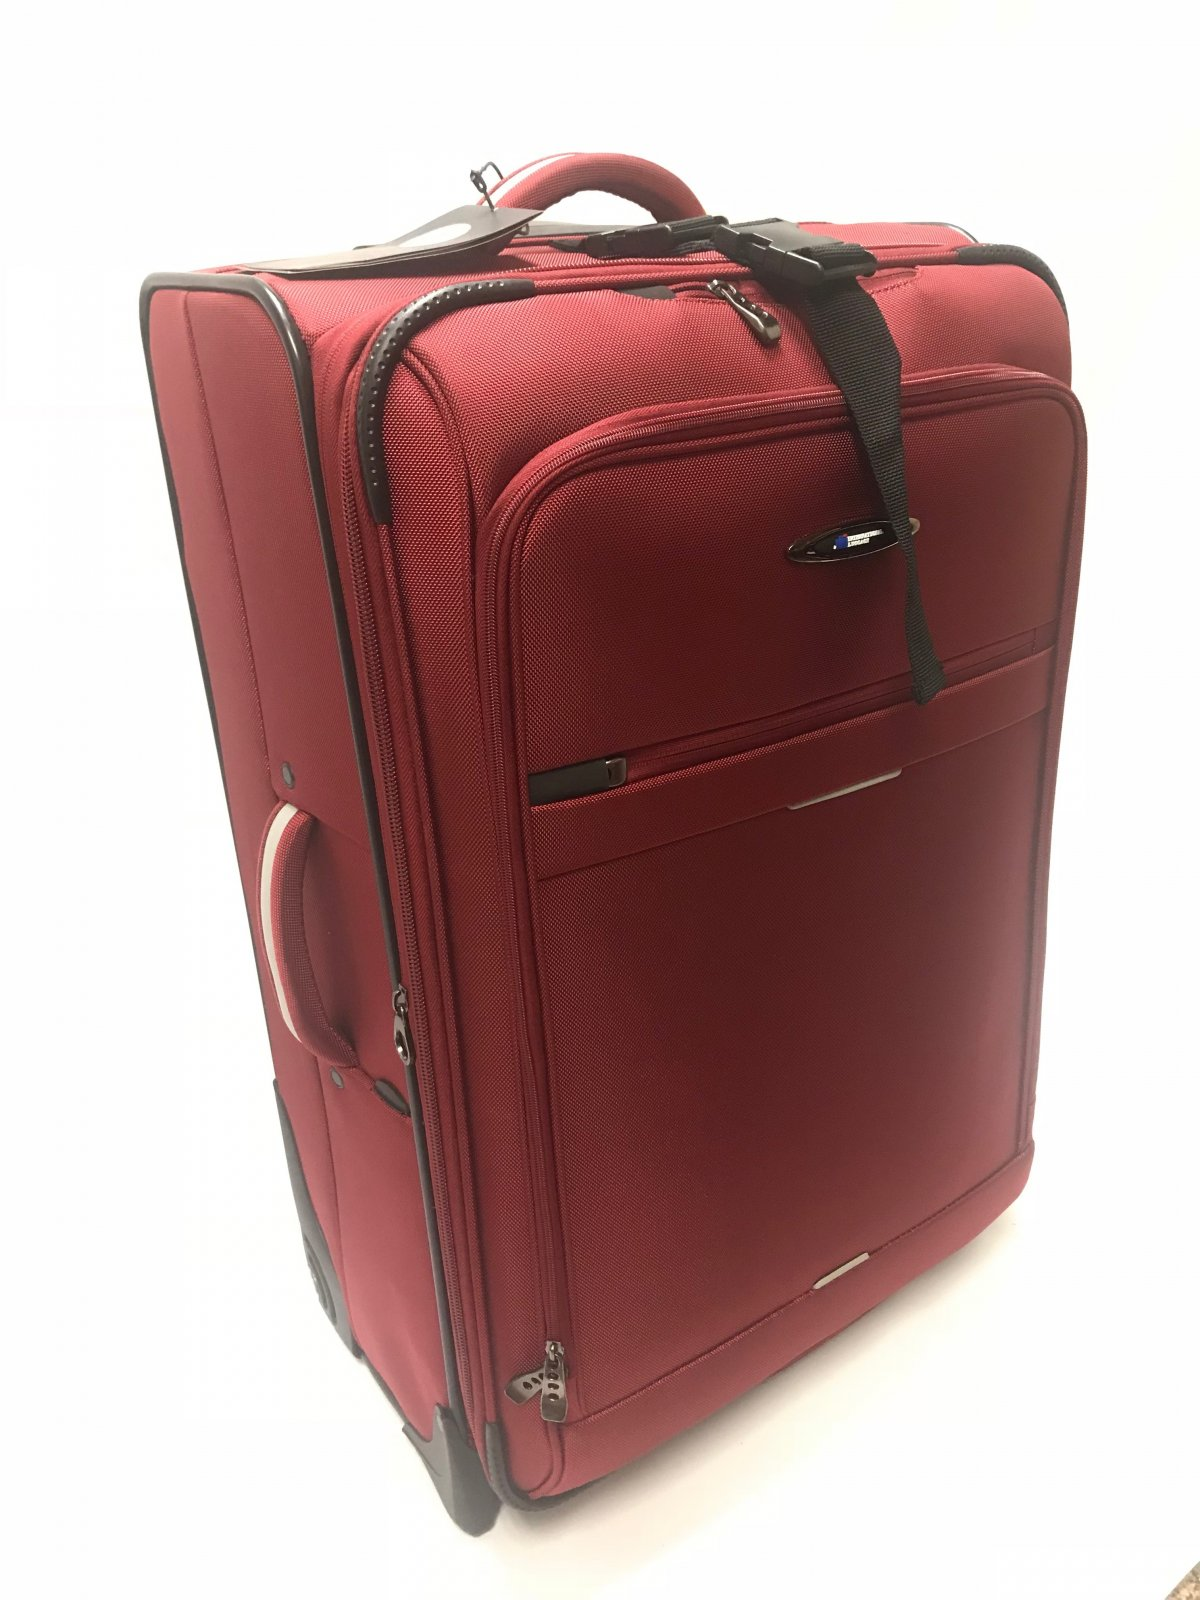 25 Checkable Red Everest Collection with Ballistic Polyester (international travel dimensions) by International Luggage